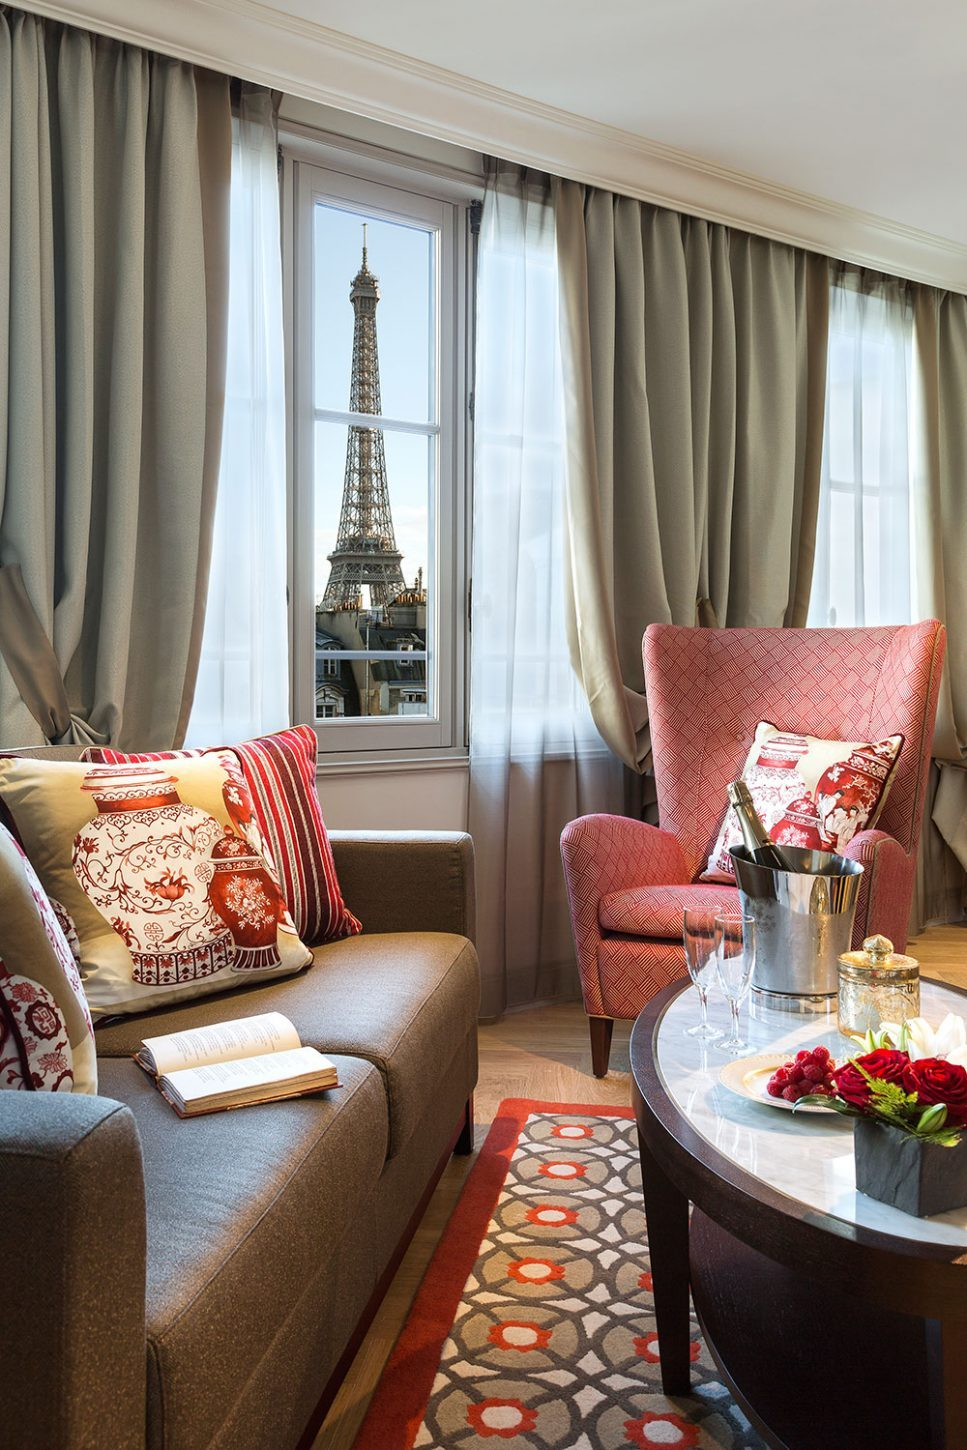 H tel 5 toiles la clef tour eiffel paris capitale for Appart hotel 5 etoiles